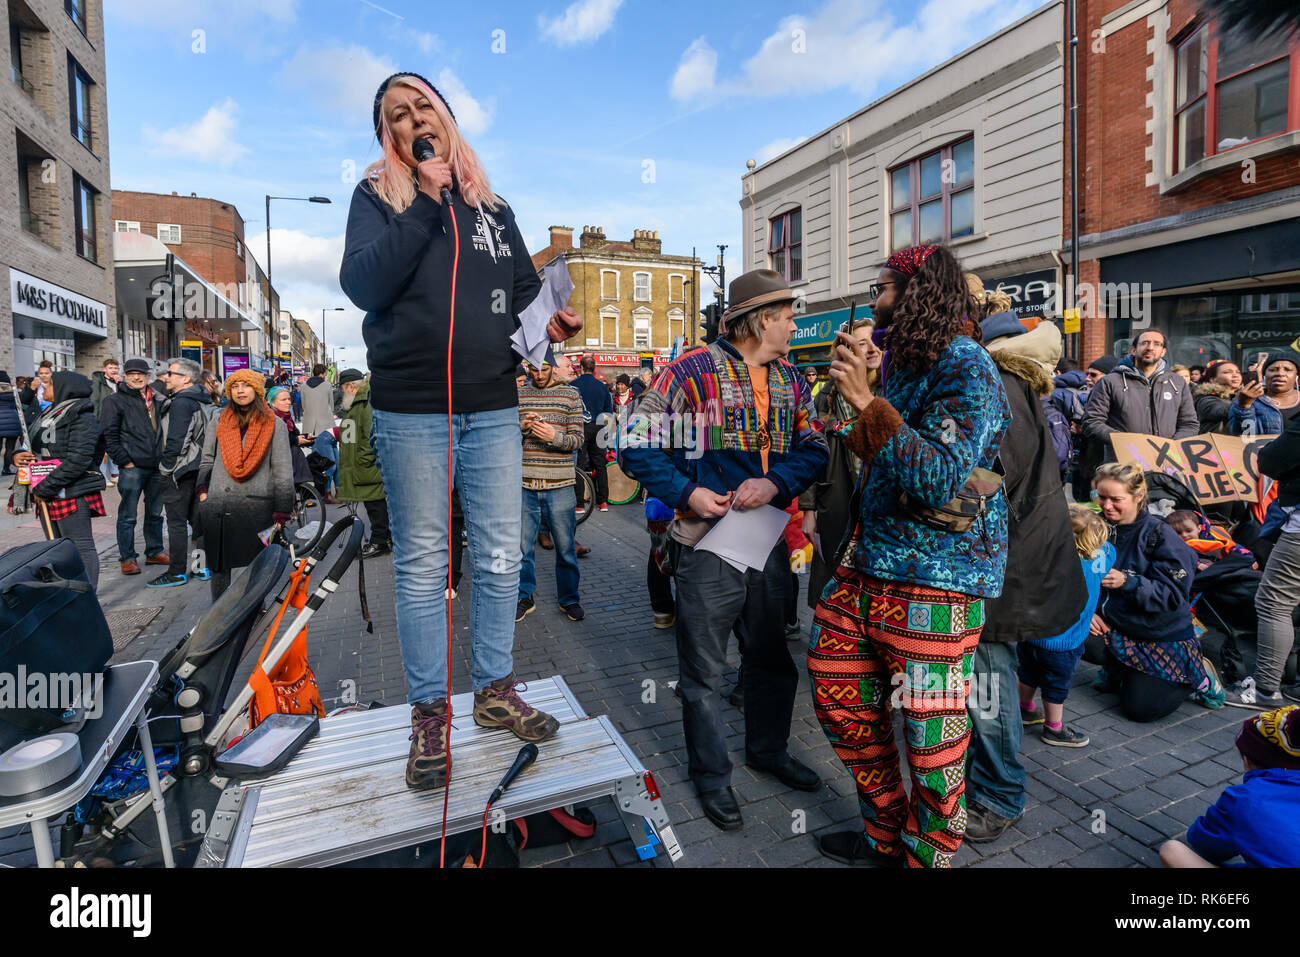 London, UK. 9th February 2019. Janie Mac speaks about refugees at the Extinction Rebellionstreet party blocking the A10 Kingsland High St in Dalston for two housrs with speeches, music and spoken word performances, t-shirt printing, face painting and free food, with dancing to a samba band which led them for a brief march up the road before returning to continue the protest in Gillett Square.  XR is in open Rebellion against the UK Government for its criminal inaction in the face of impending climate and ecological collapse.  Peter Marshall/Alamy Live News - Stock Image